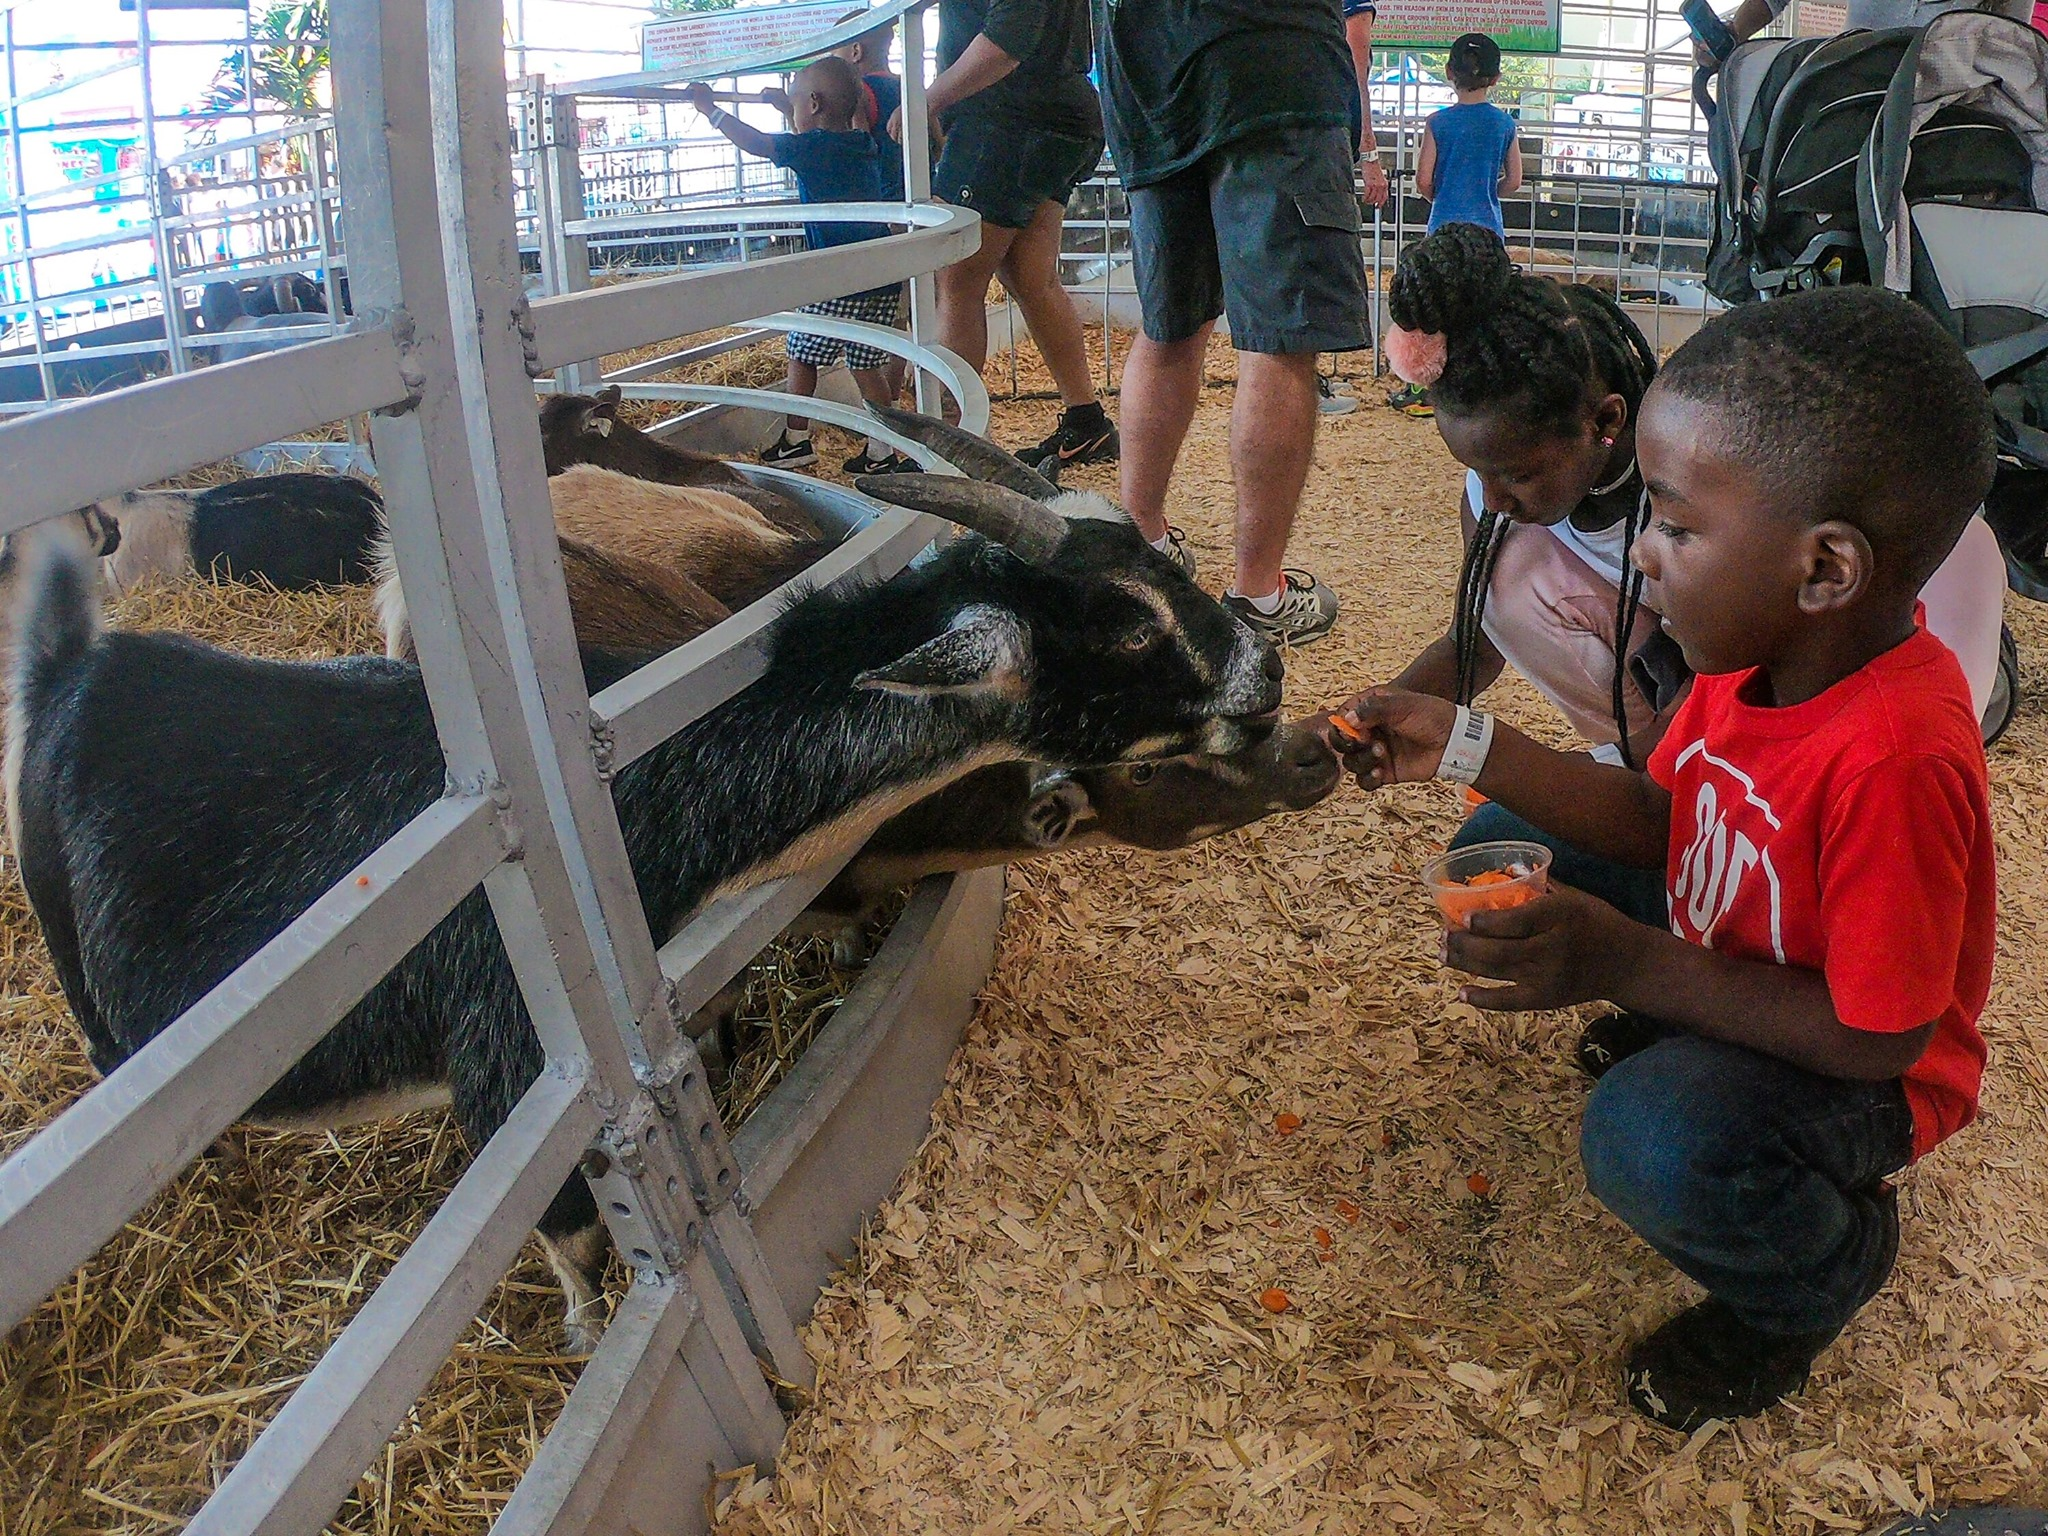 Mid-South Fair (Southaven, MS)